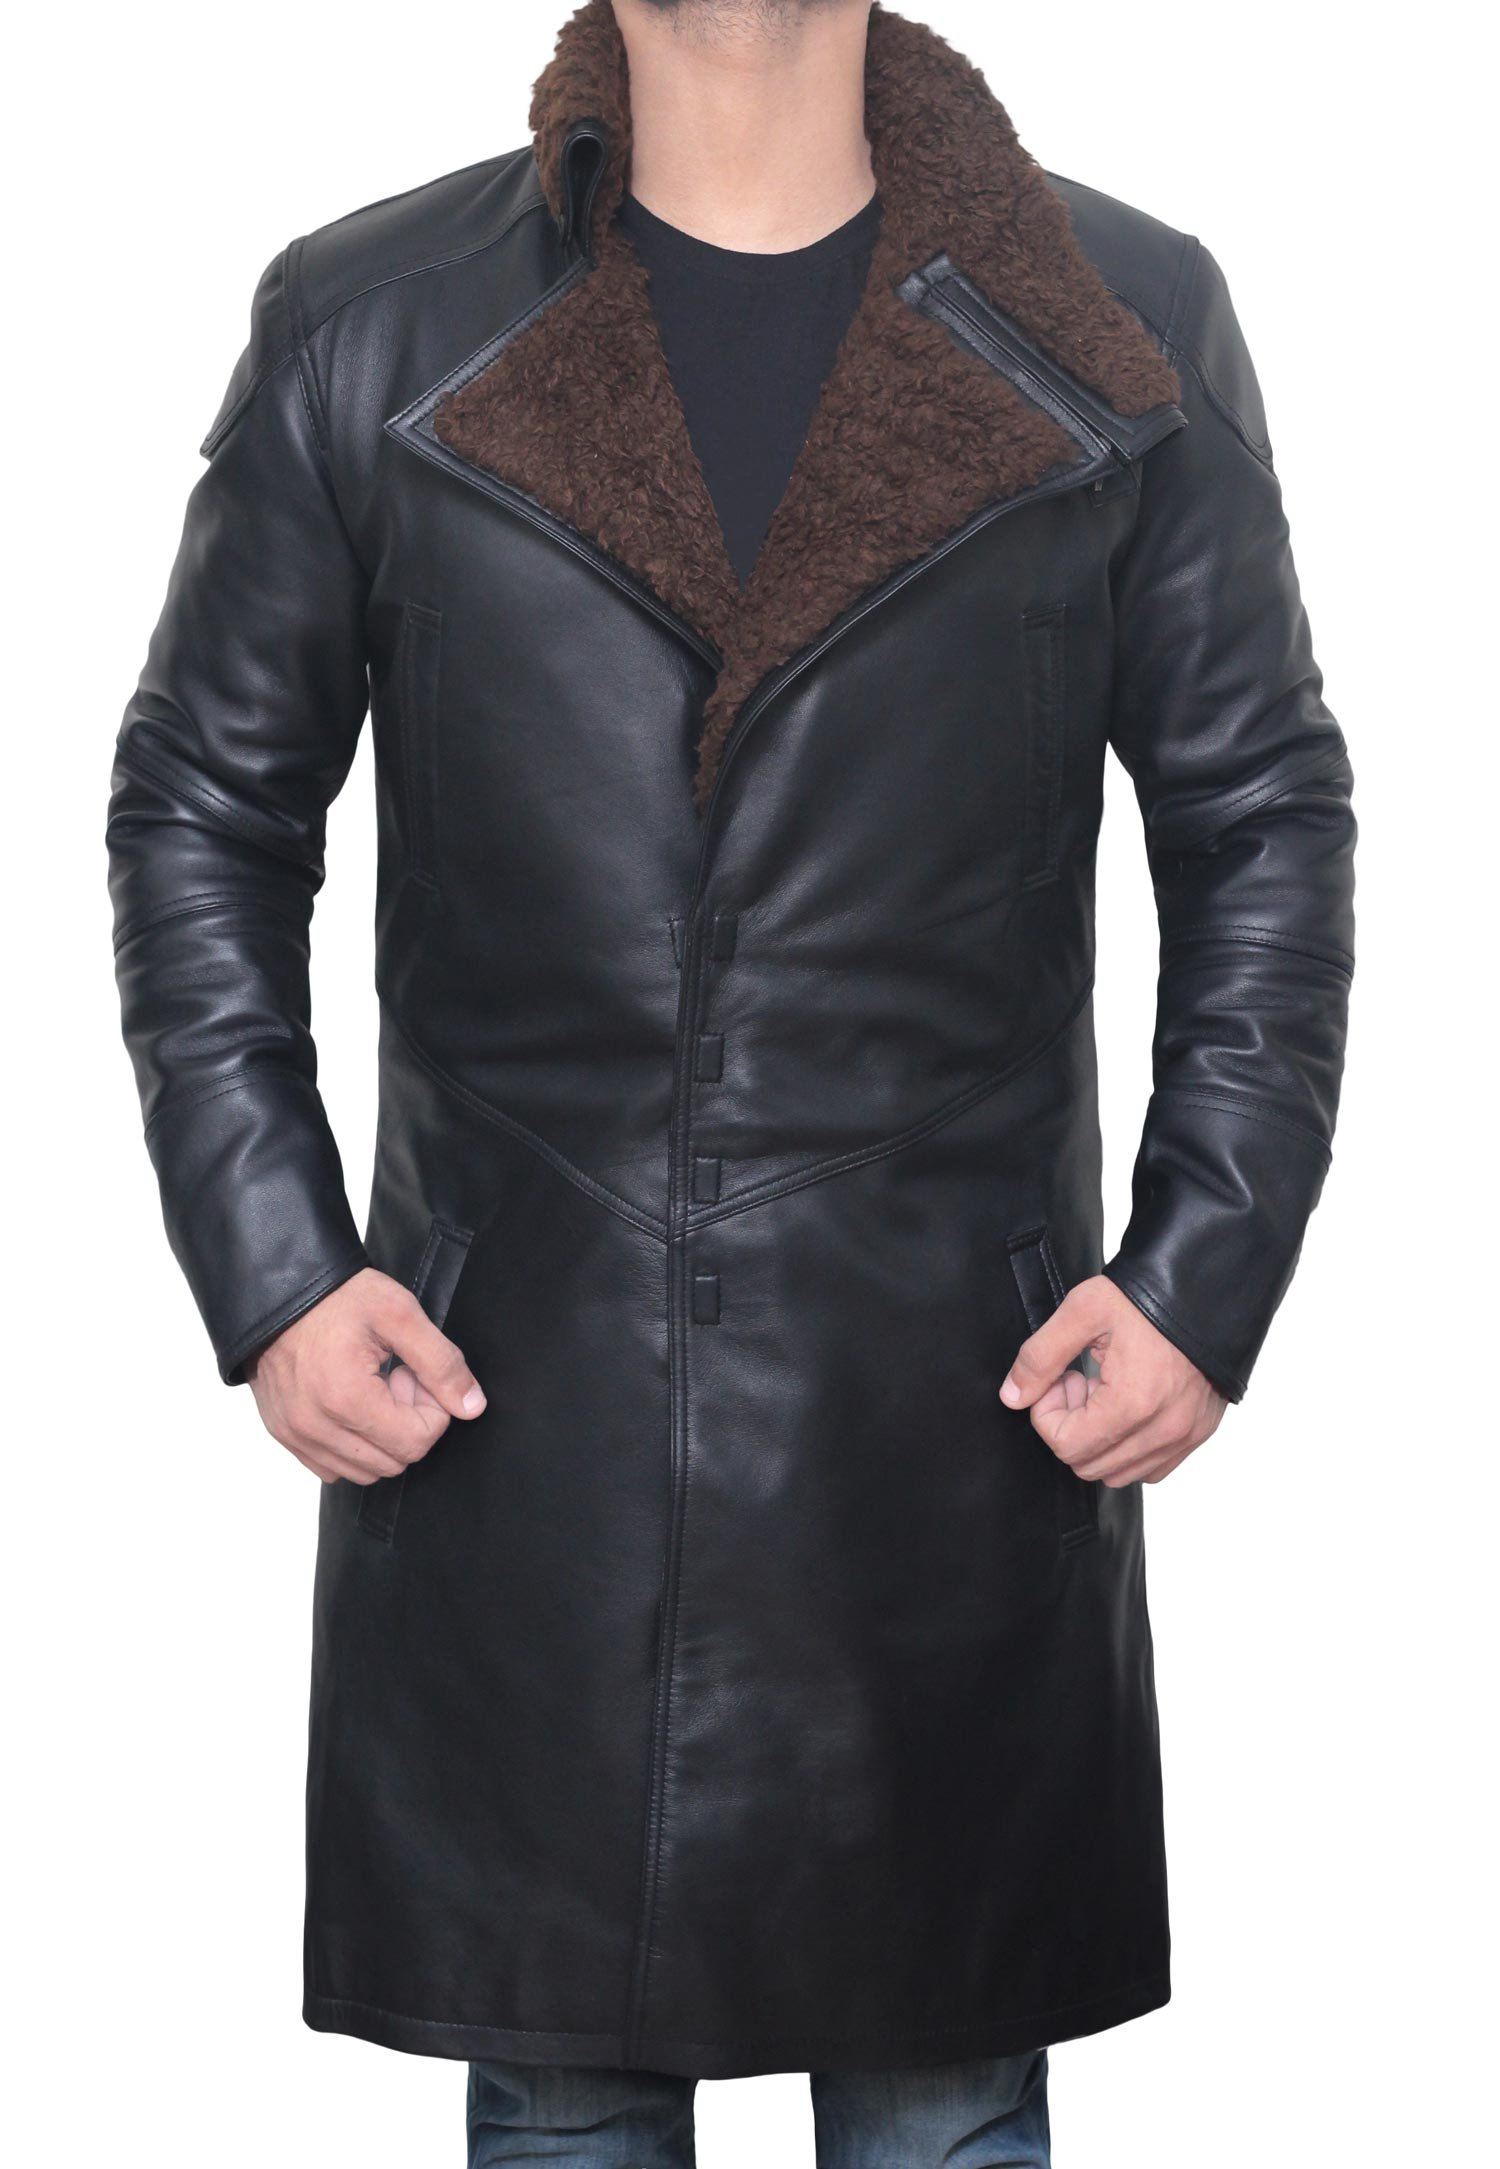 Mens Ryan Gosling Coat - Magnet Closure Blade Runner Black Real Leather Coat, S